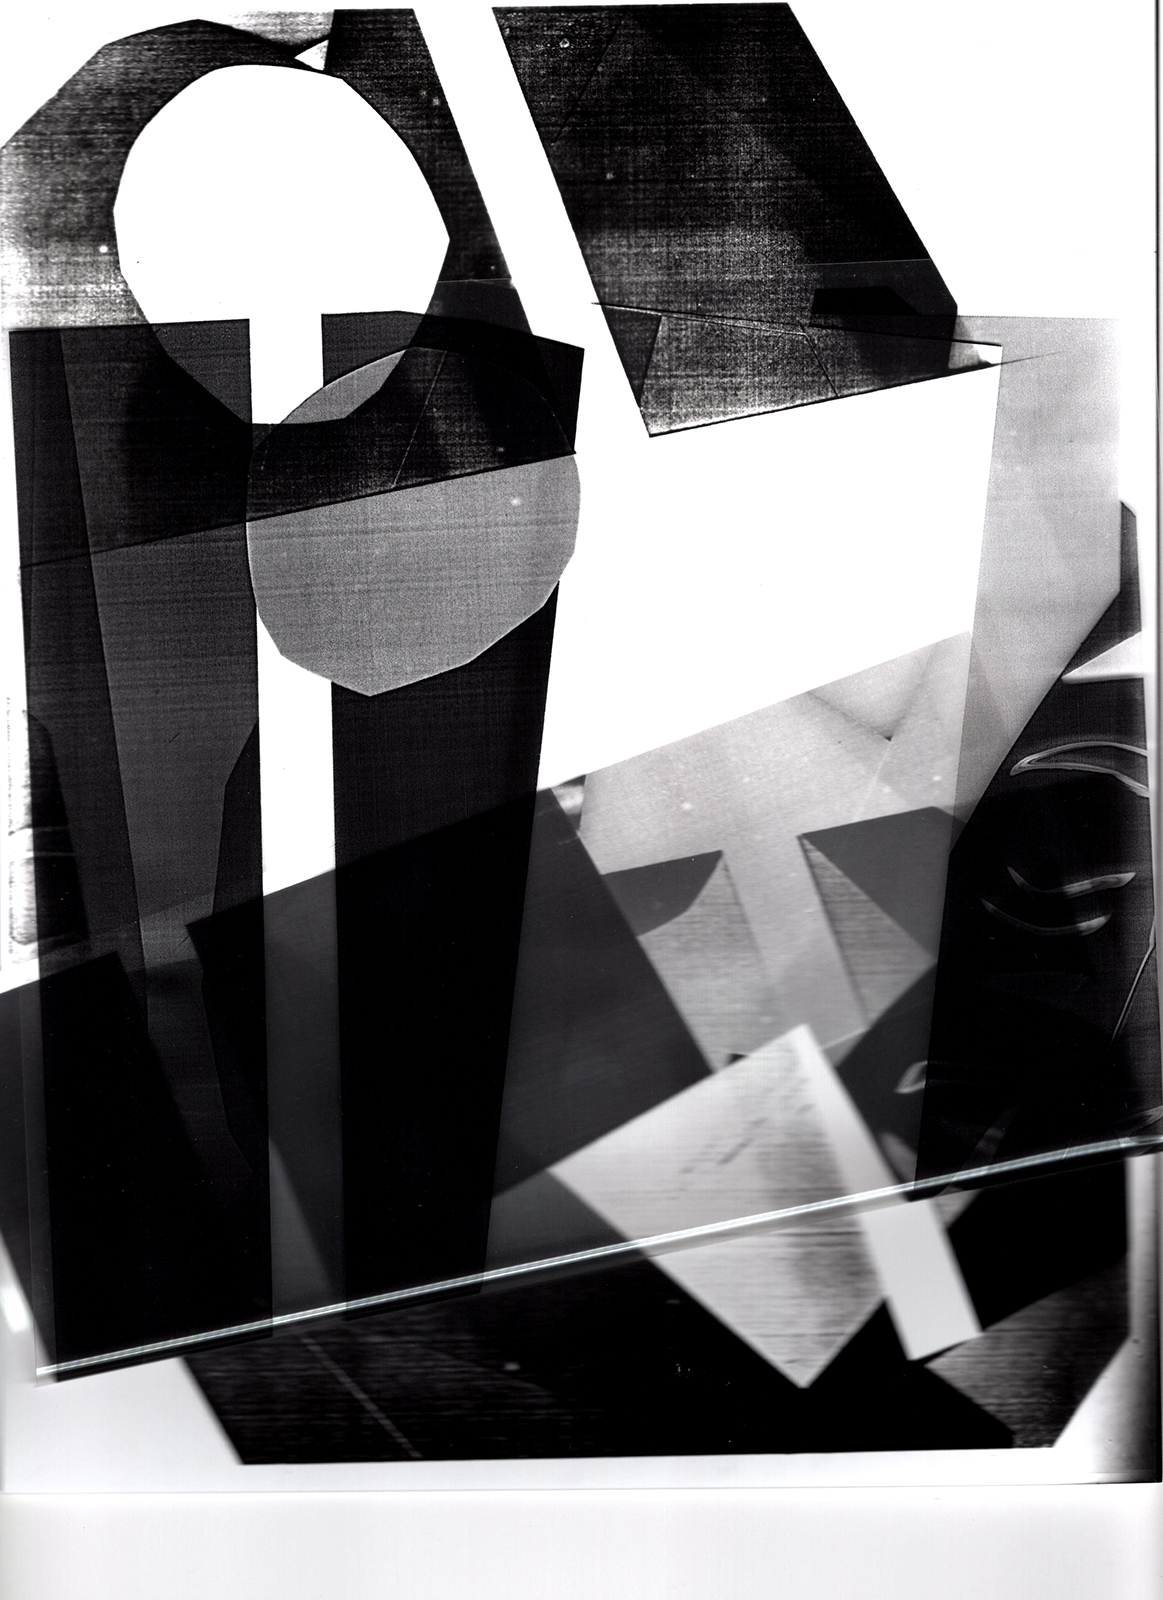 From digital to silver and then back again, flatbed photogram ,  Gelatin silver photograph, transparency film print,  8.5 x 11.7 inches  Year: 2019